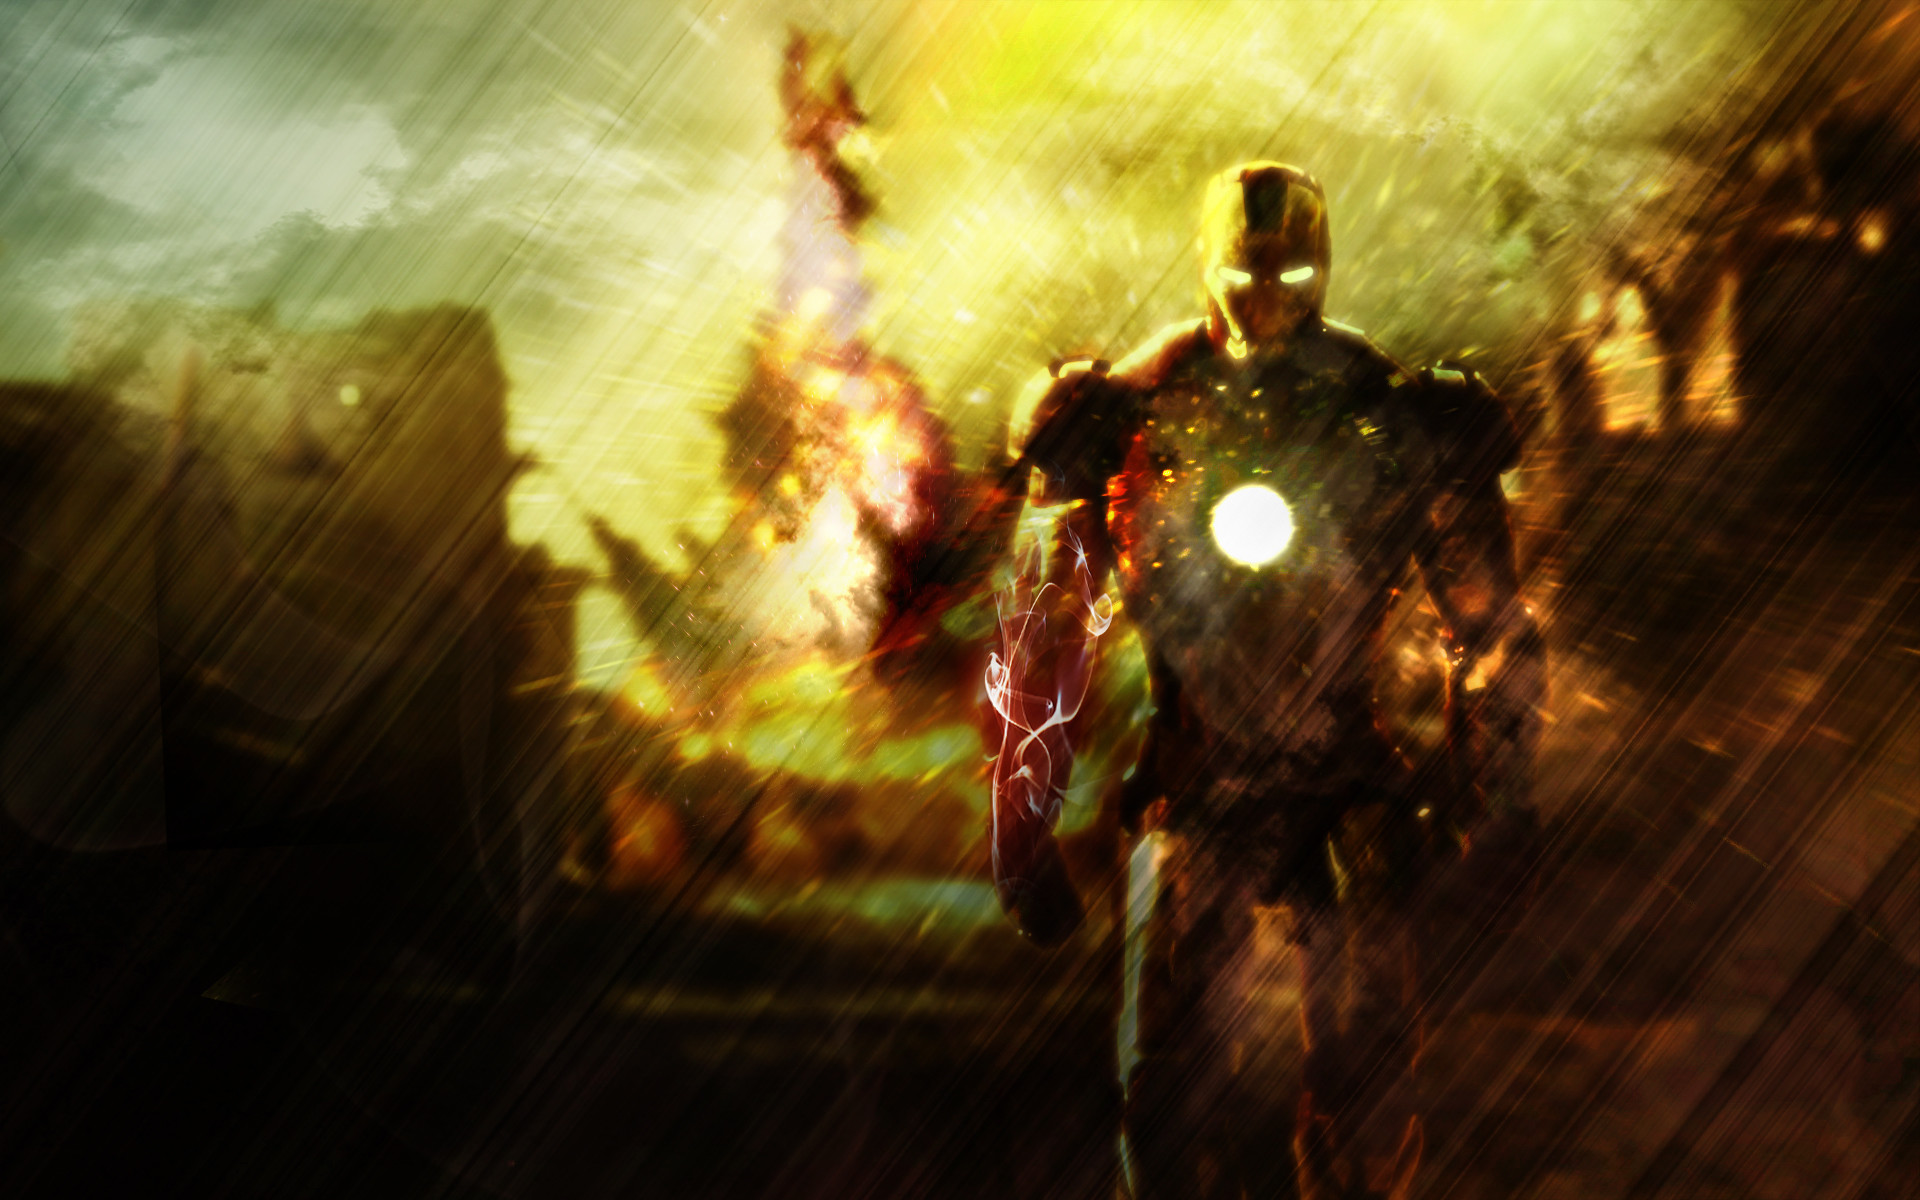 1920x1200 iron man desktop background hd windows wallpapers hd download free  background images mac windows 10 tablet 1920×1200 Wallpaper HD